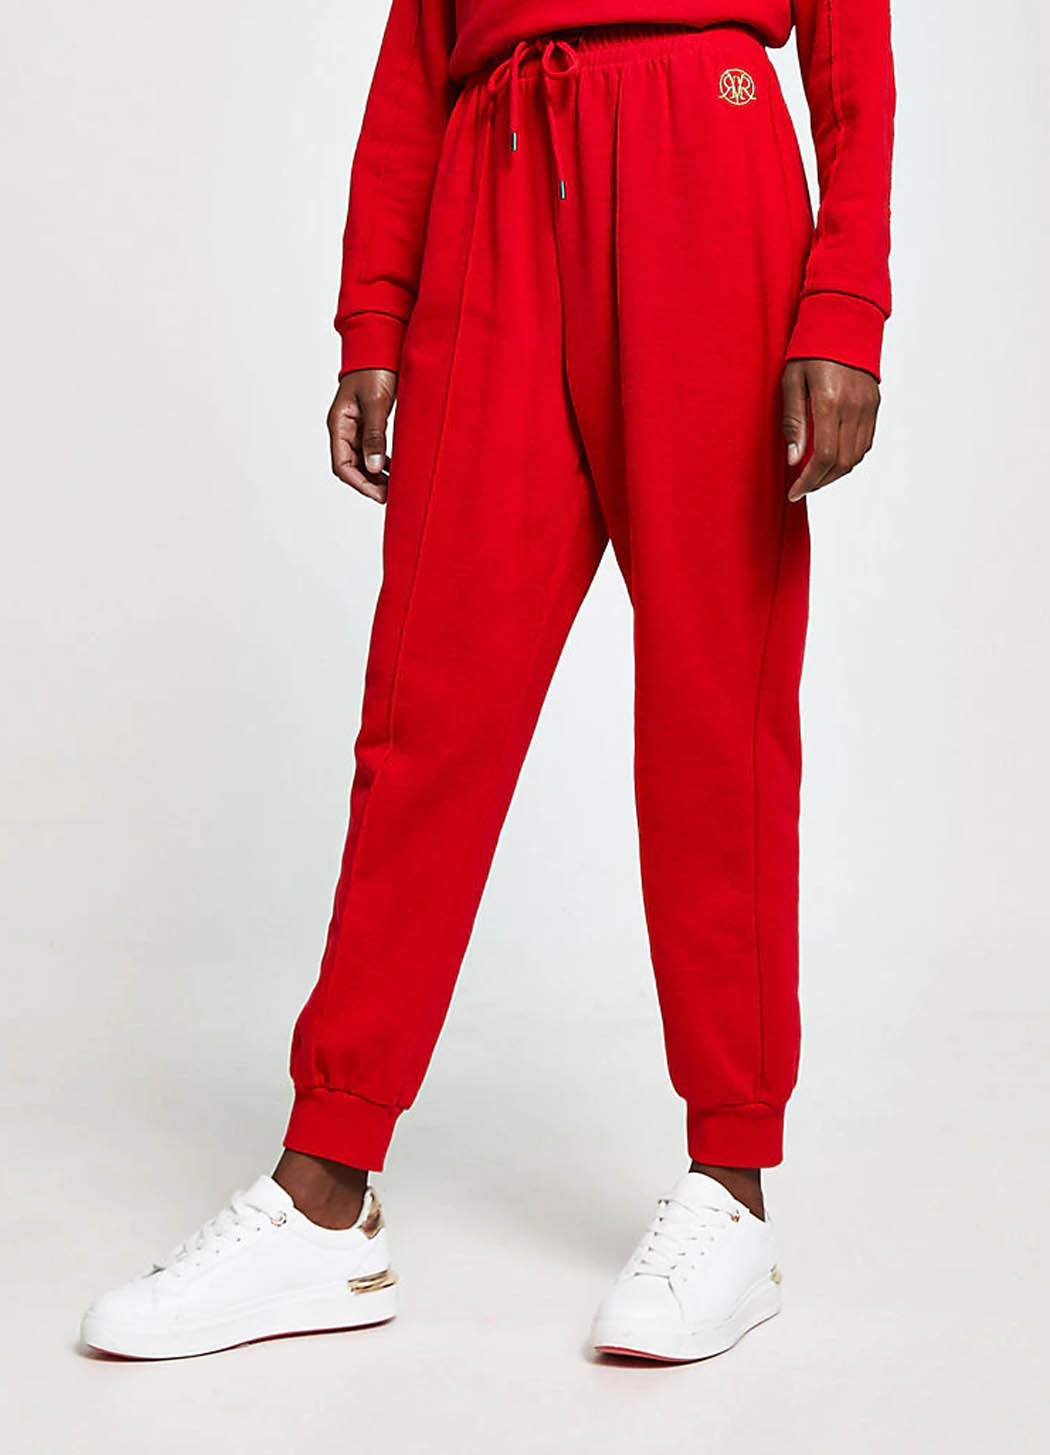 red joggers women